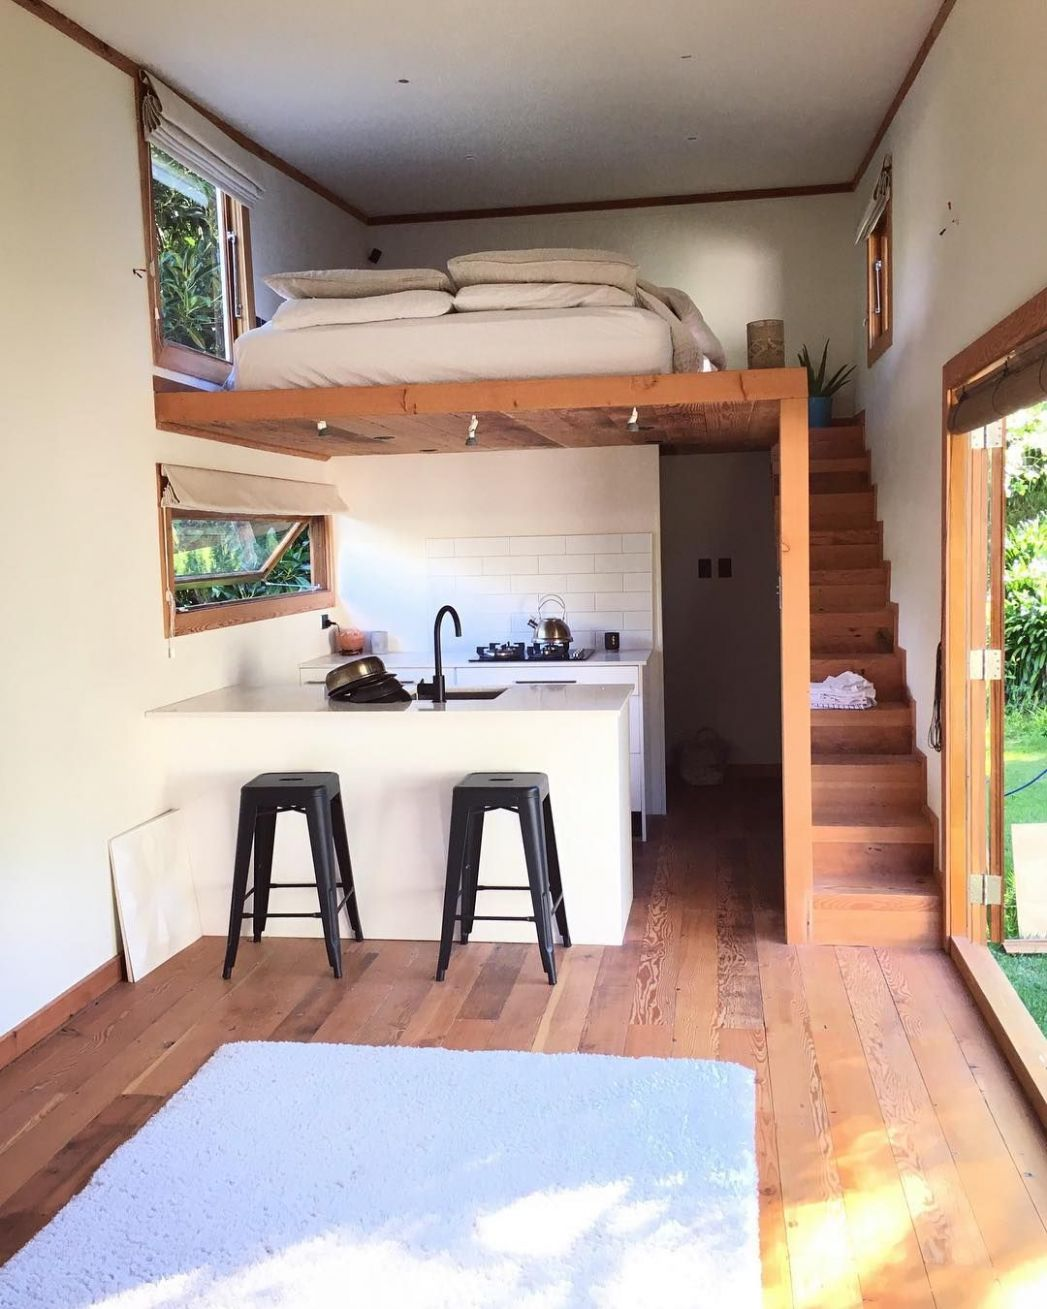 12 Tiny House Design Tricks to Try in Your Full-Sized Home (With ..